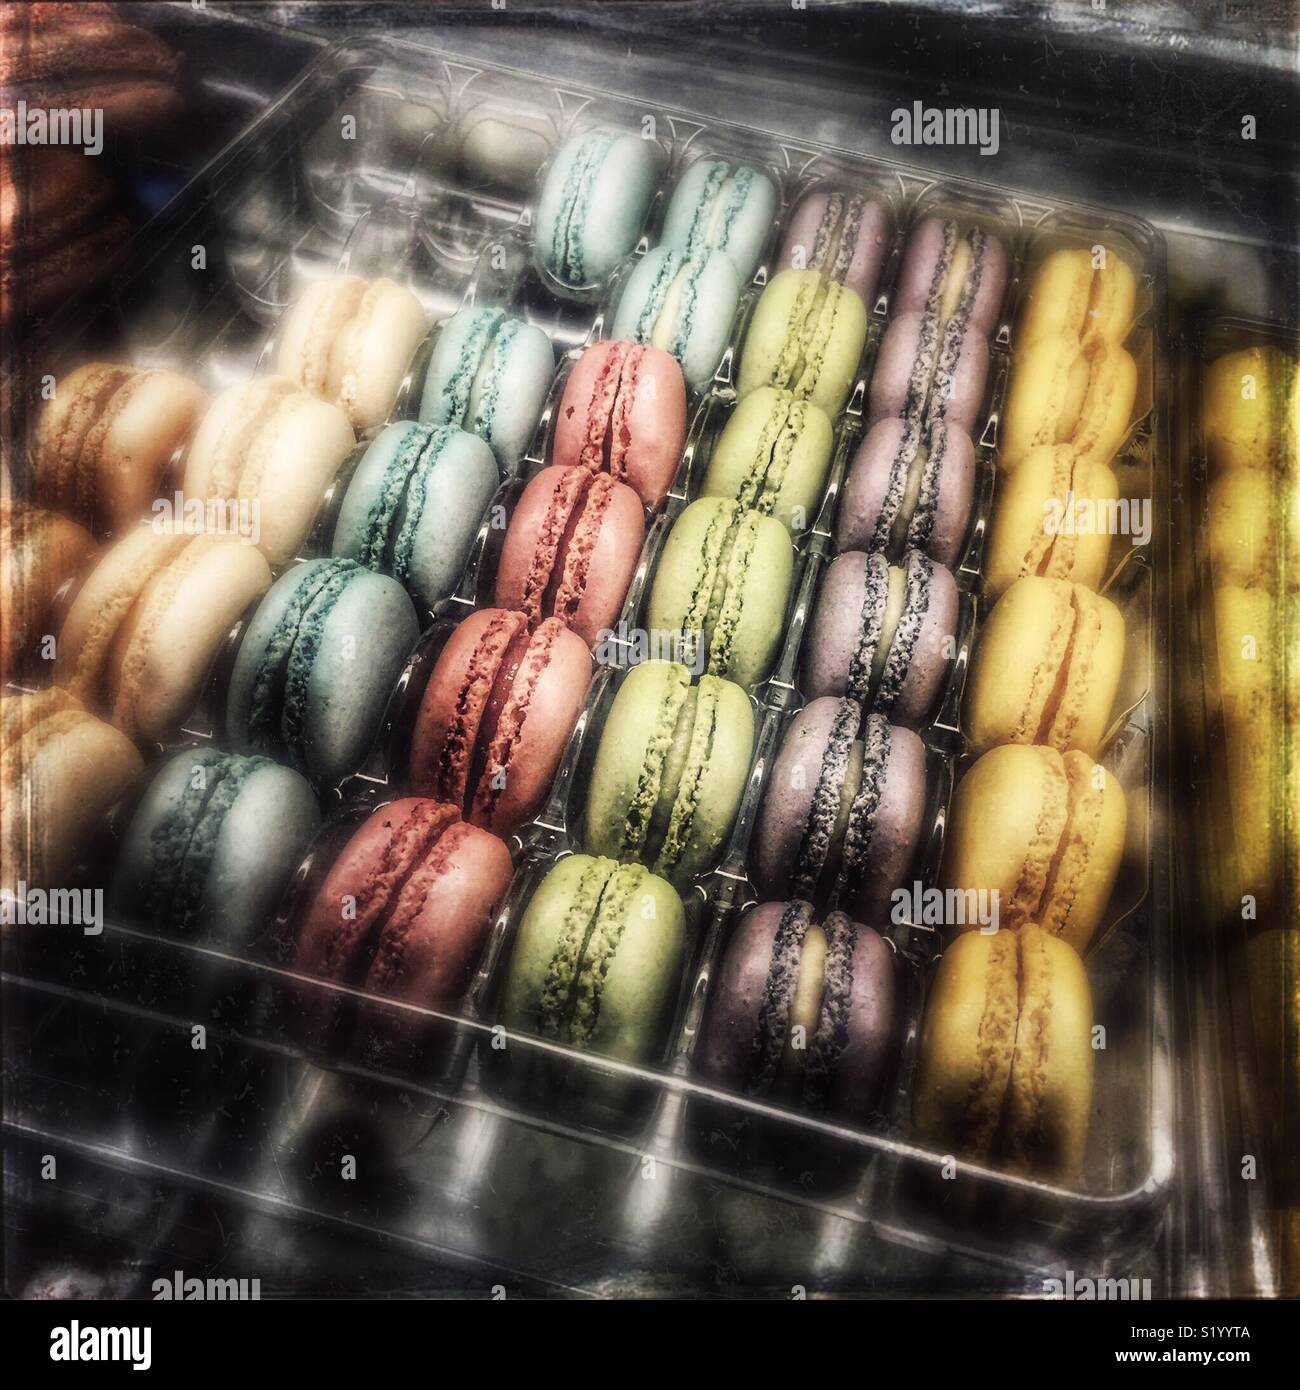 Macarons in a showcase - Stock Image